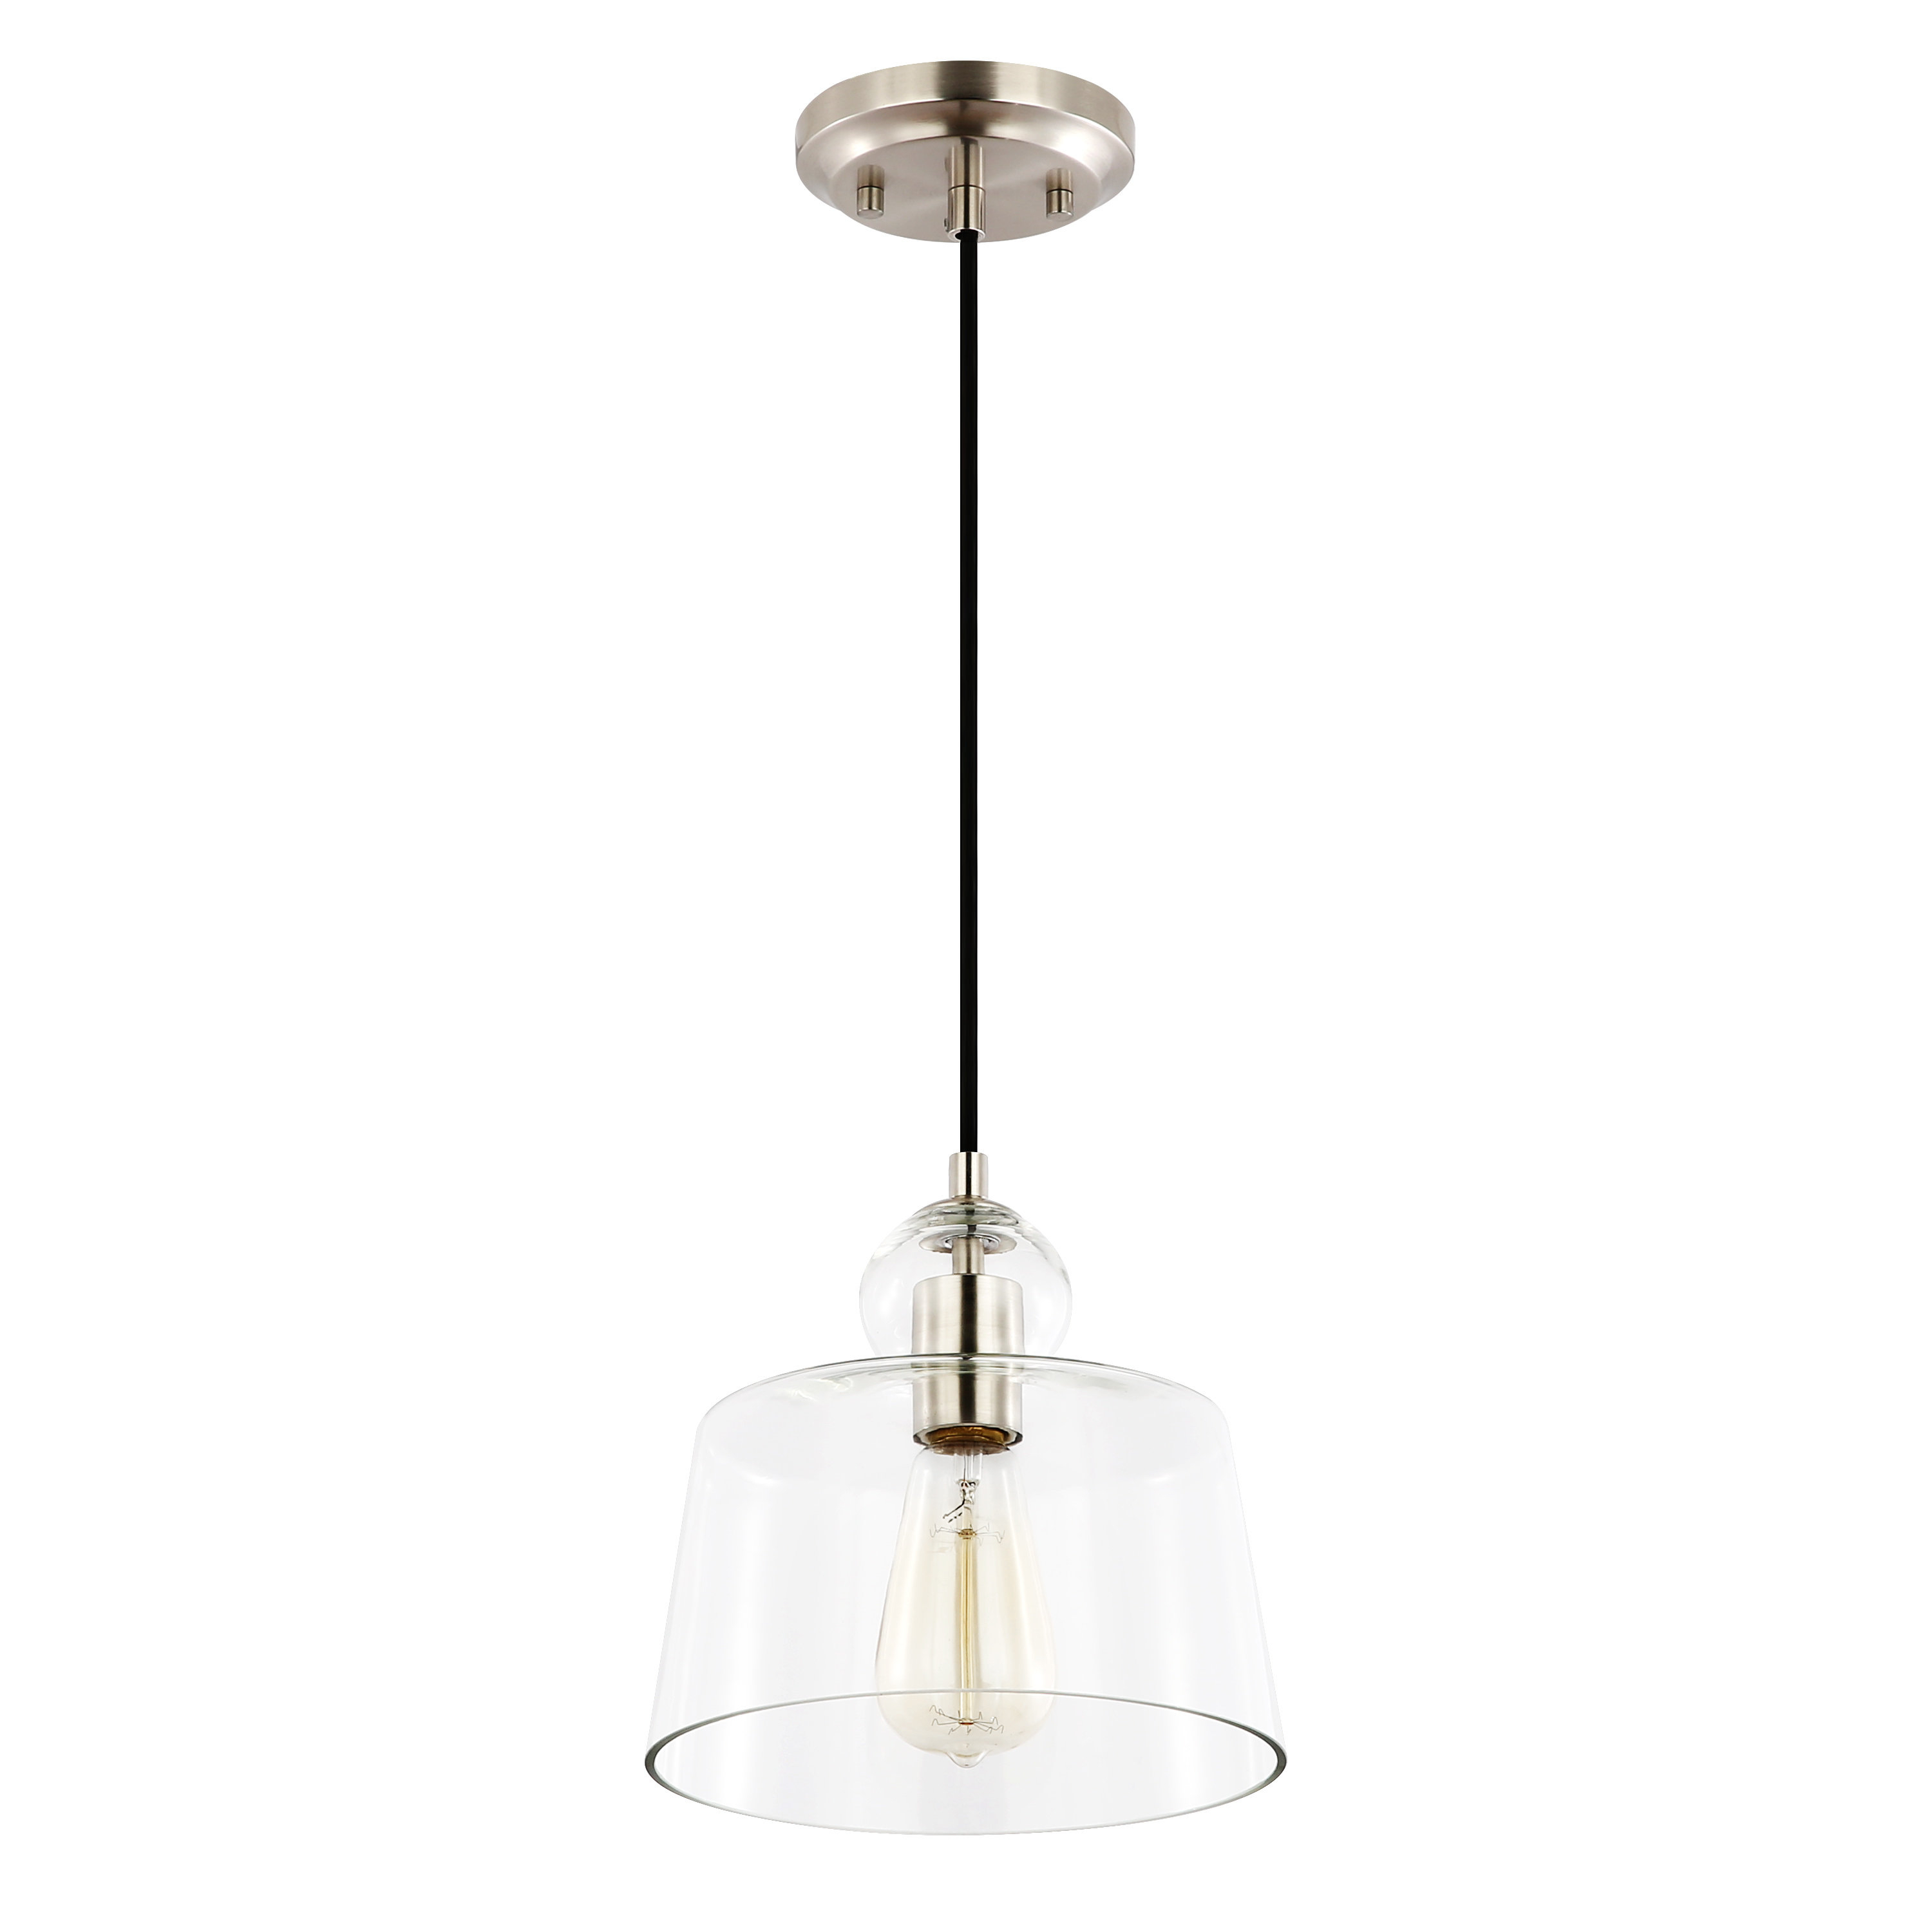 Marcello 1 Light Bell Pendant Within Moyer 1 Light Single Cylinder Pendants (View 14 of 30)